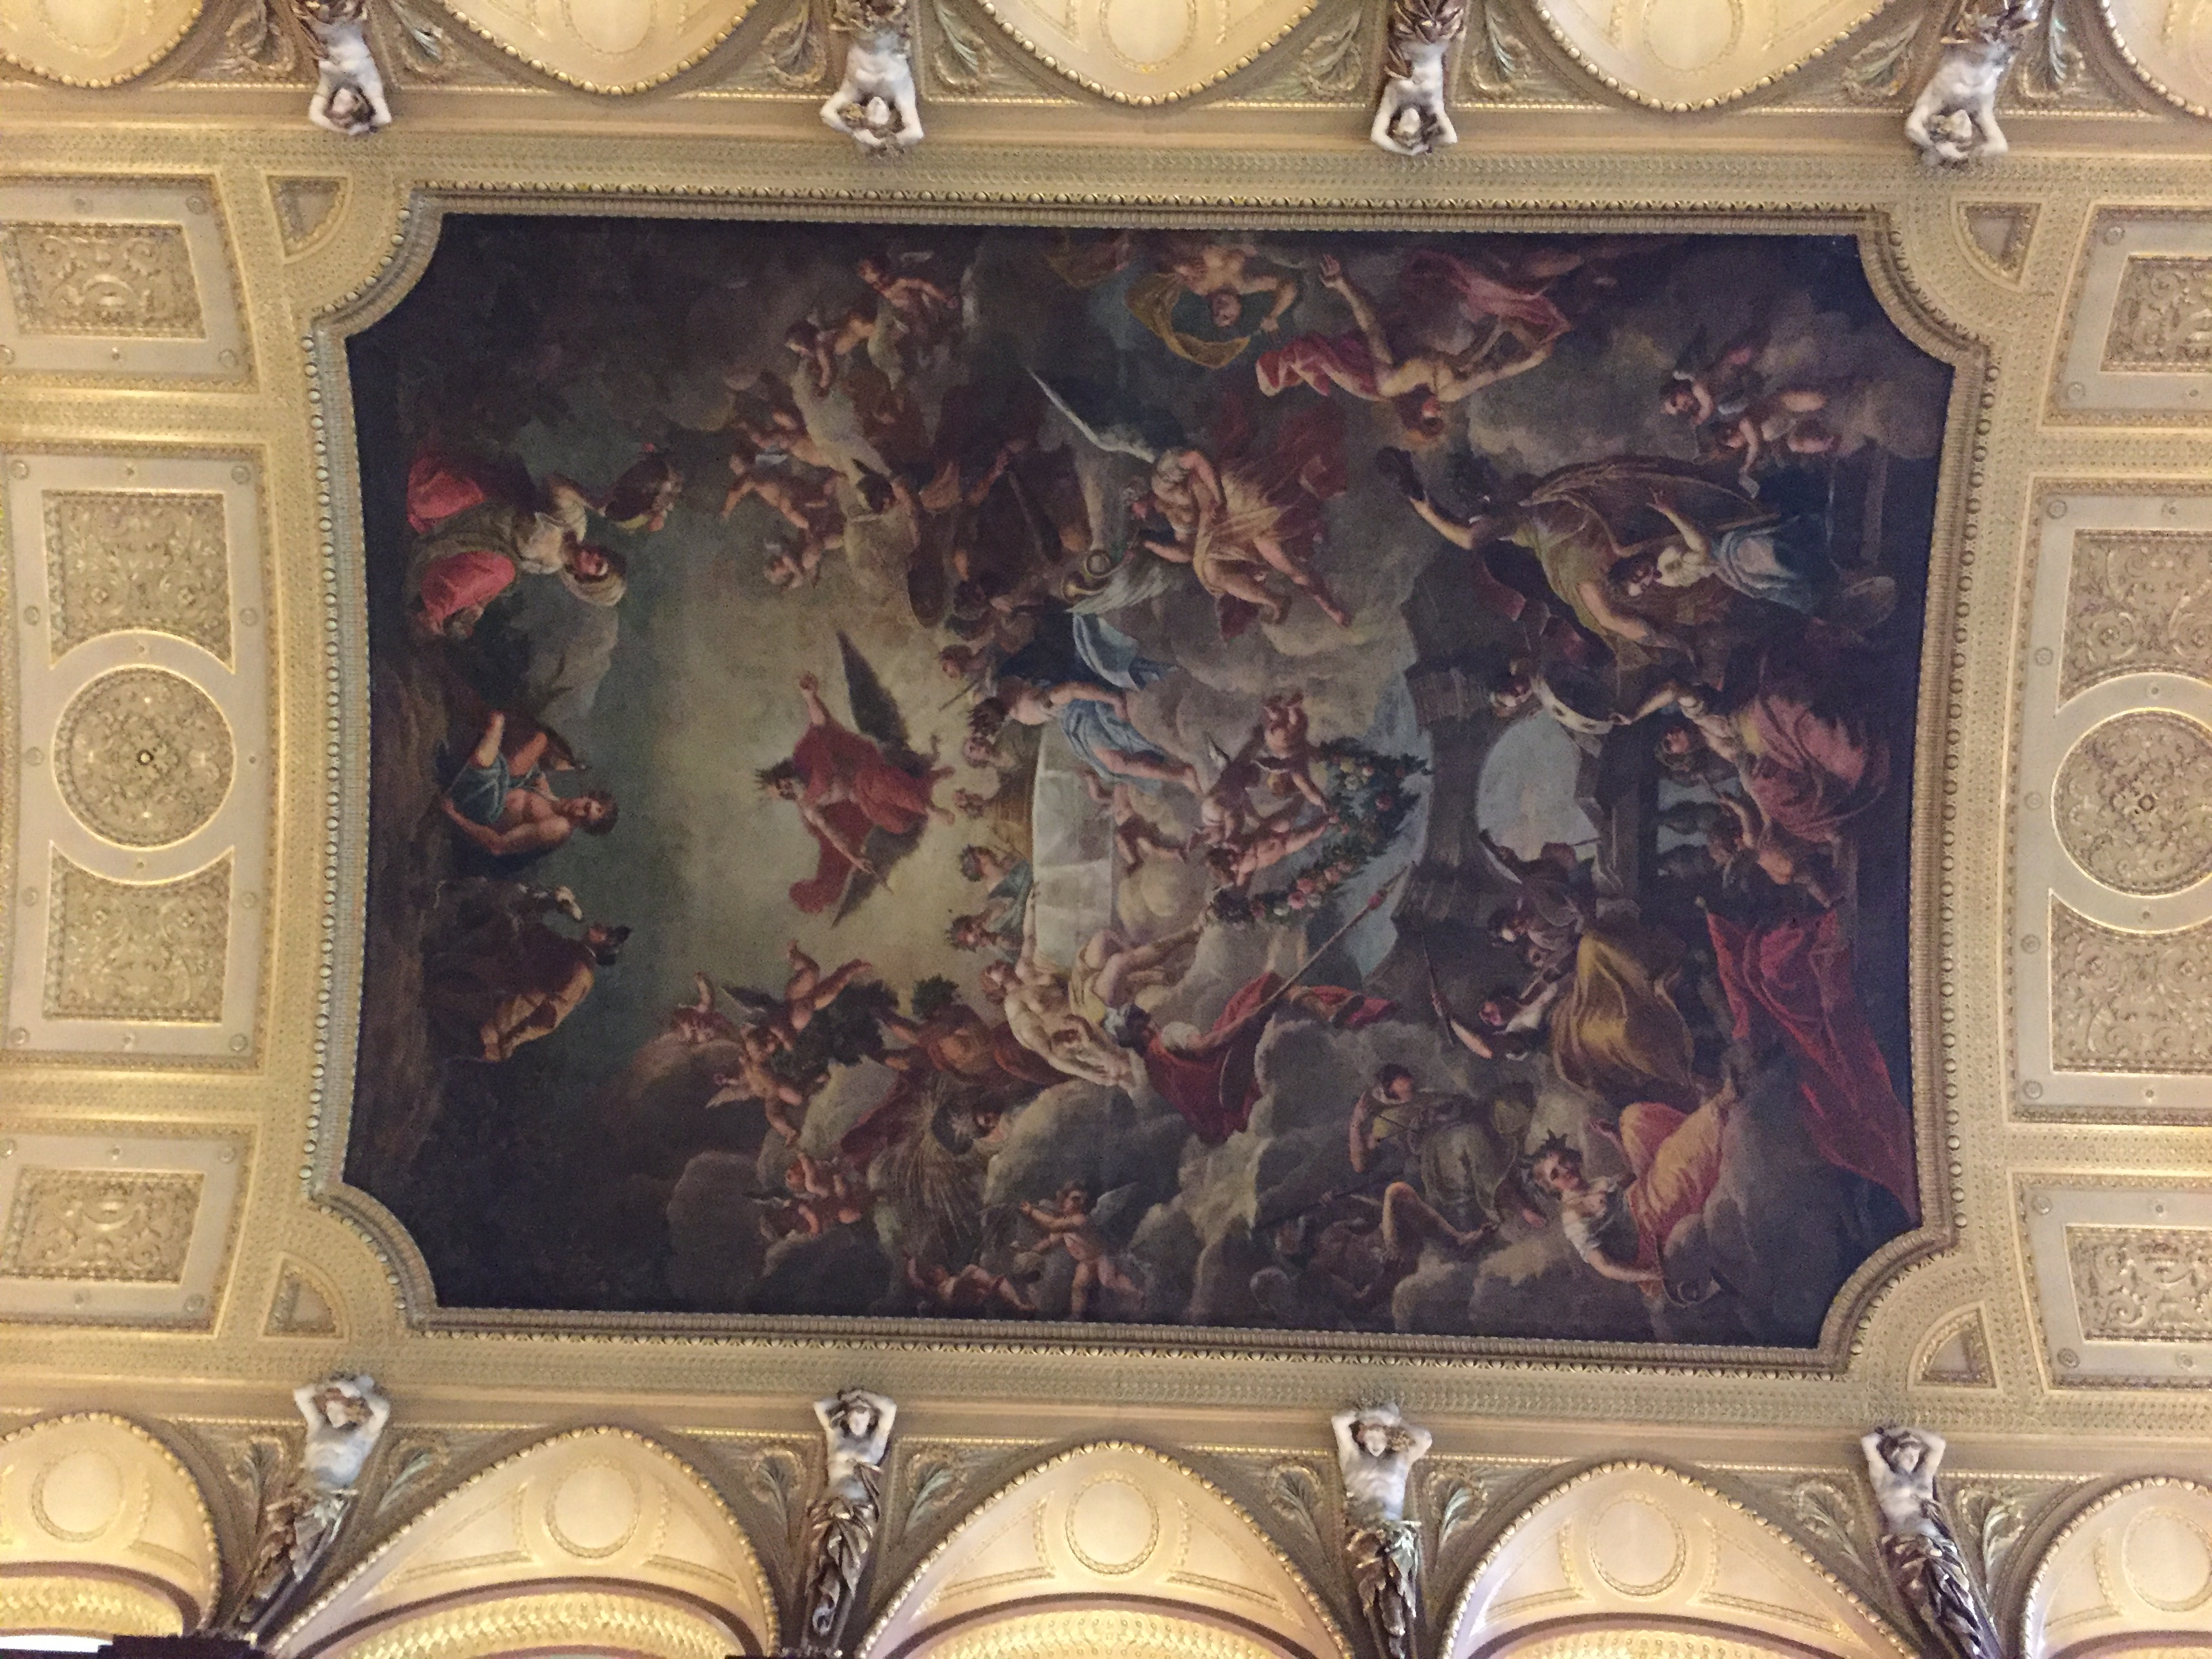 Ceiling painting in the great hall